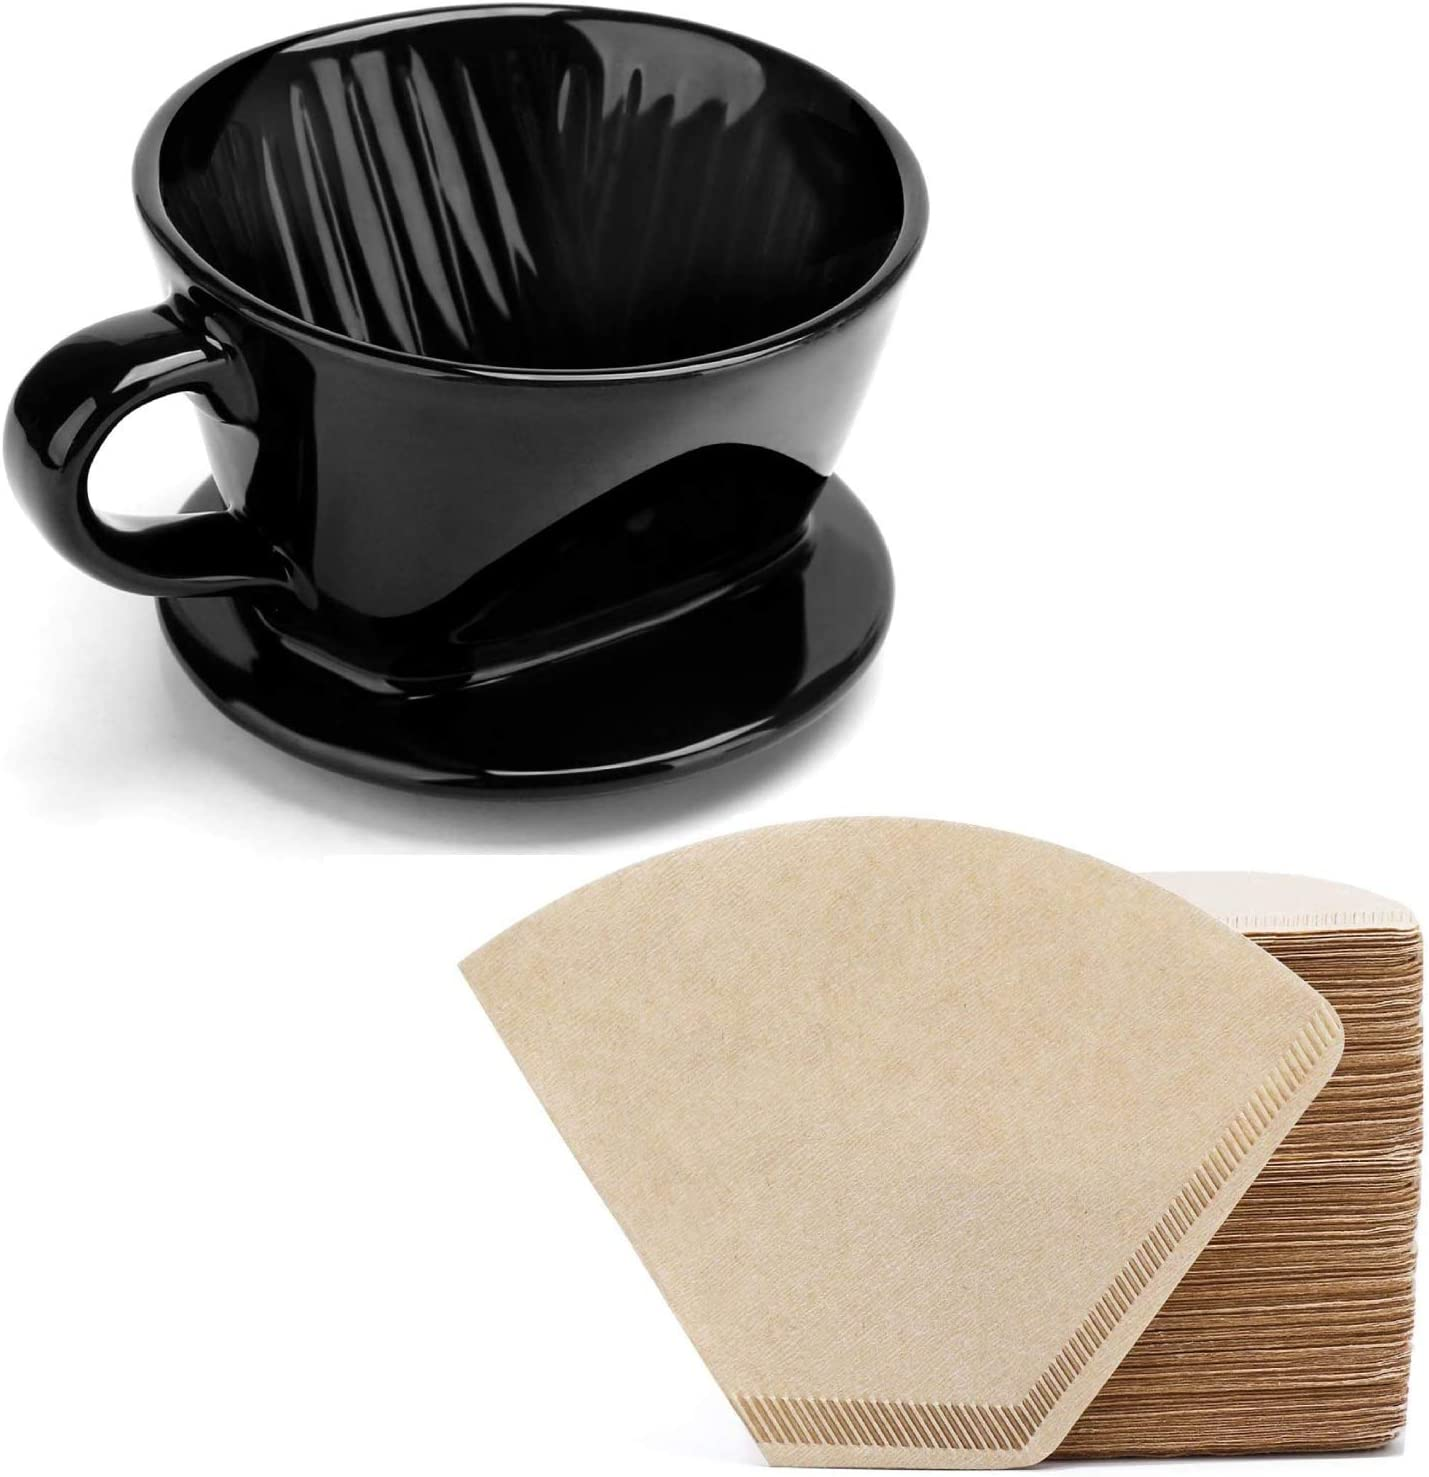 Coffee Filter, Segarty #2 Coffee Filter Cup and 400 Count #2 Coffee Disposable Cone Filters Paper, Flat Bottom Brewing Coffee Dripper and Natural Brown Paper for Home & Office Used, Easy to Clean